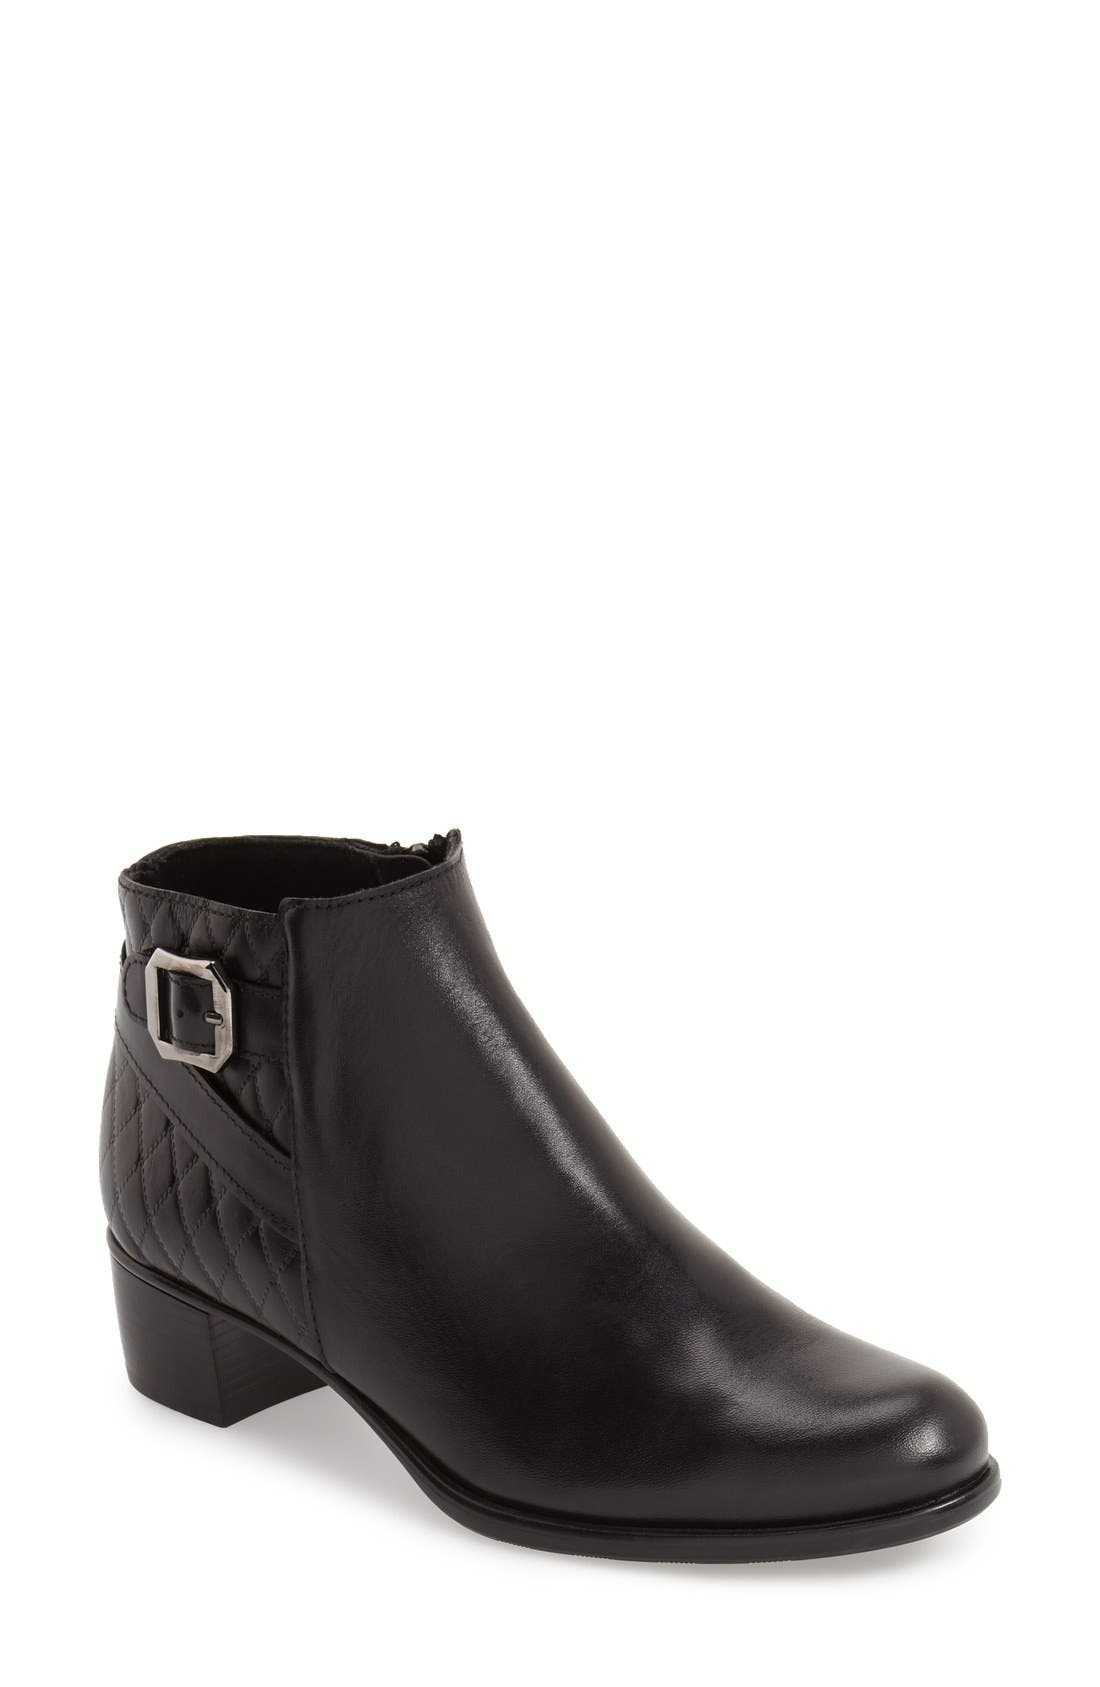 'Jolynn' Bootie,                         Main,                         color, Black Quilted Leather